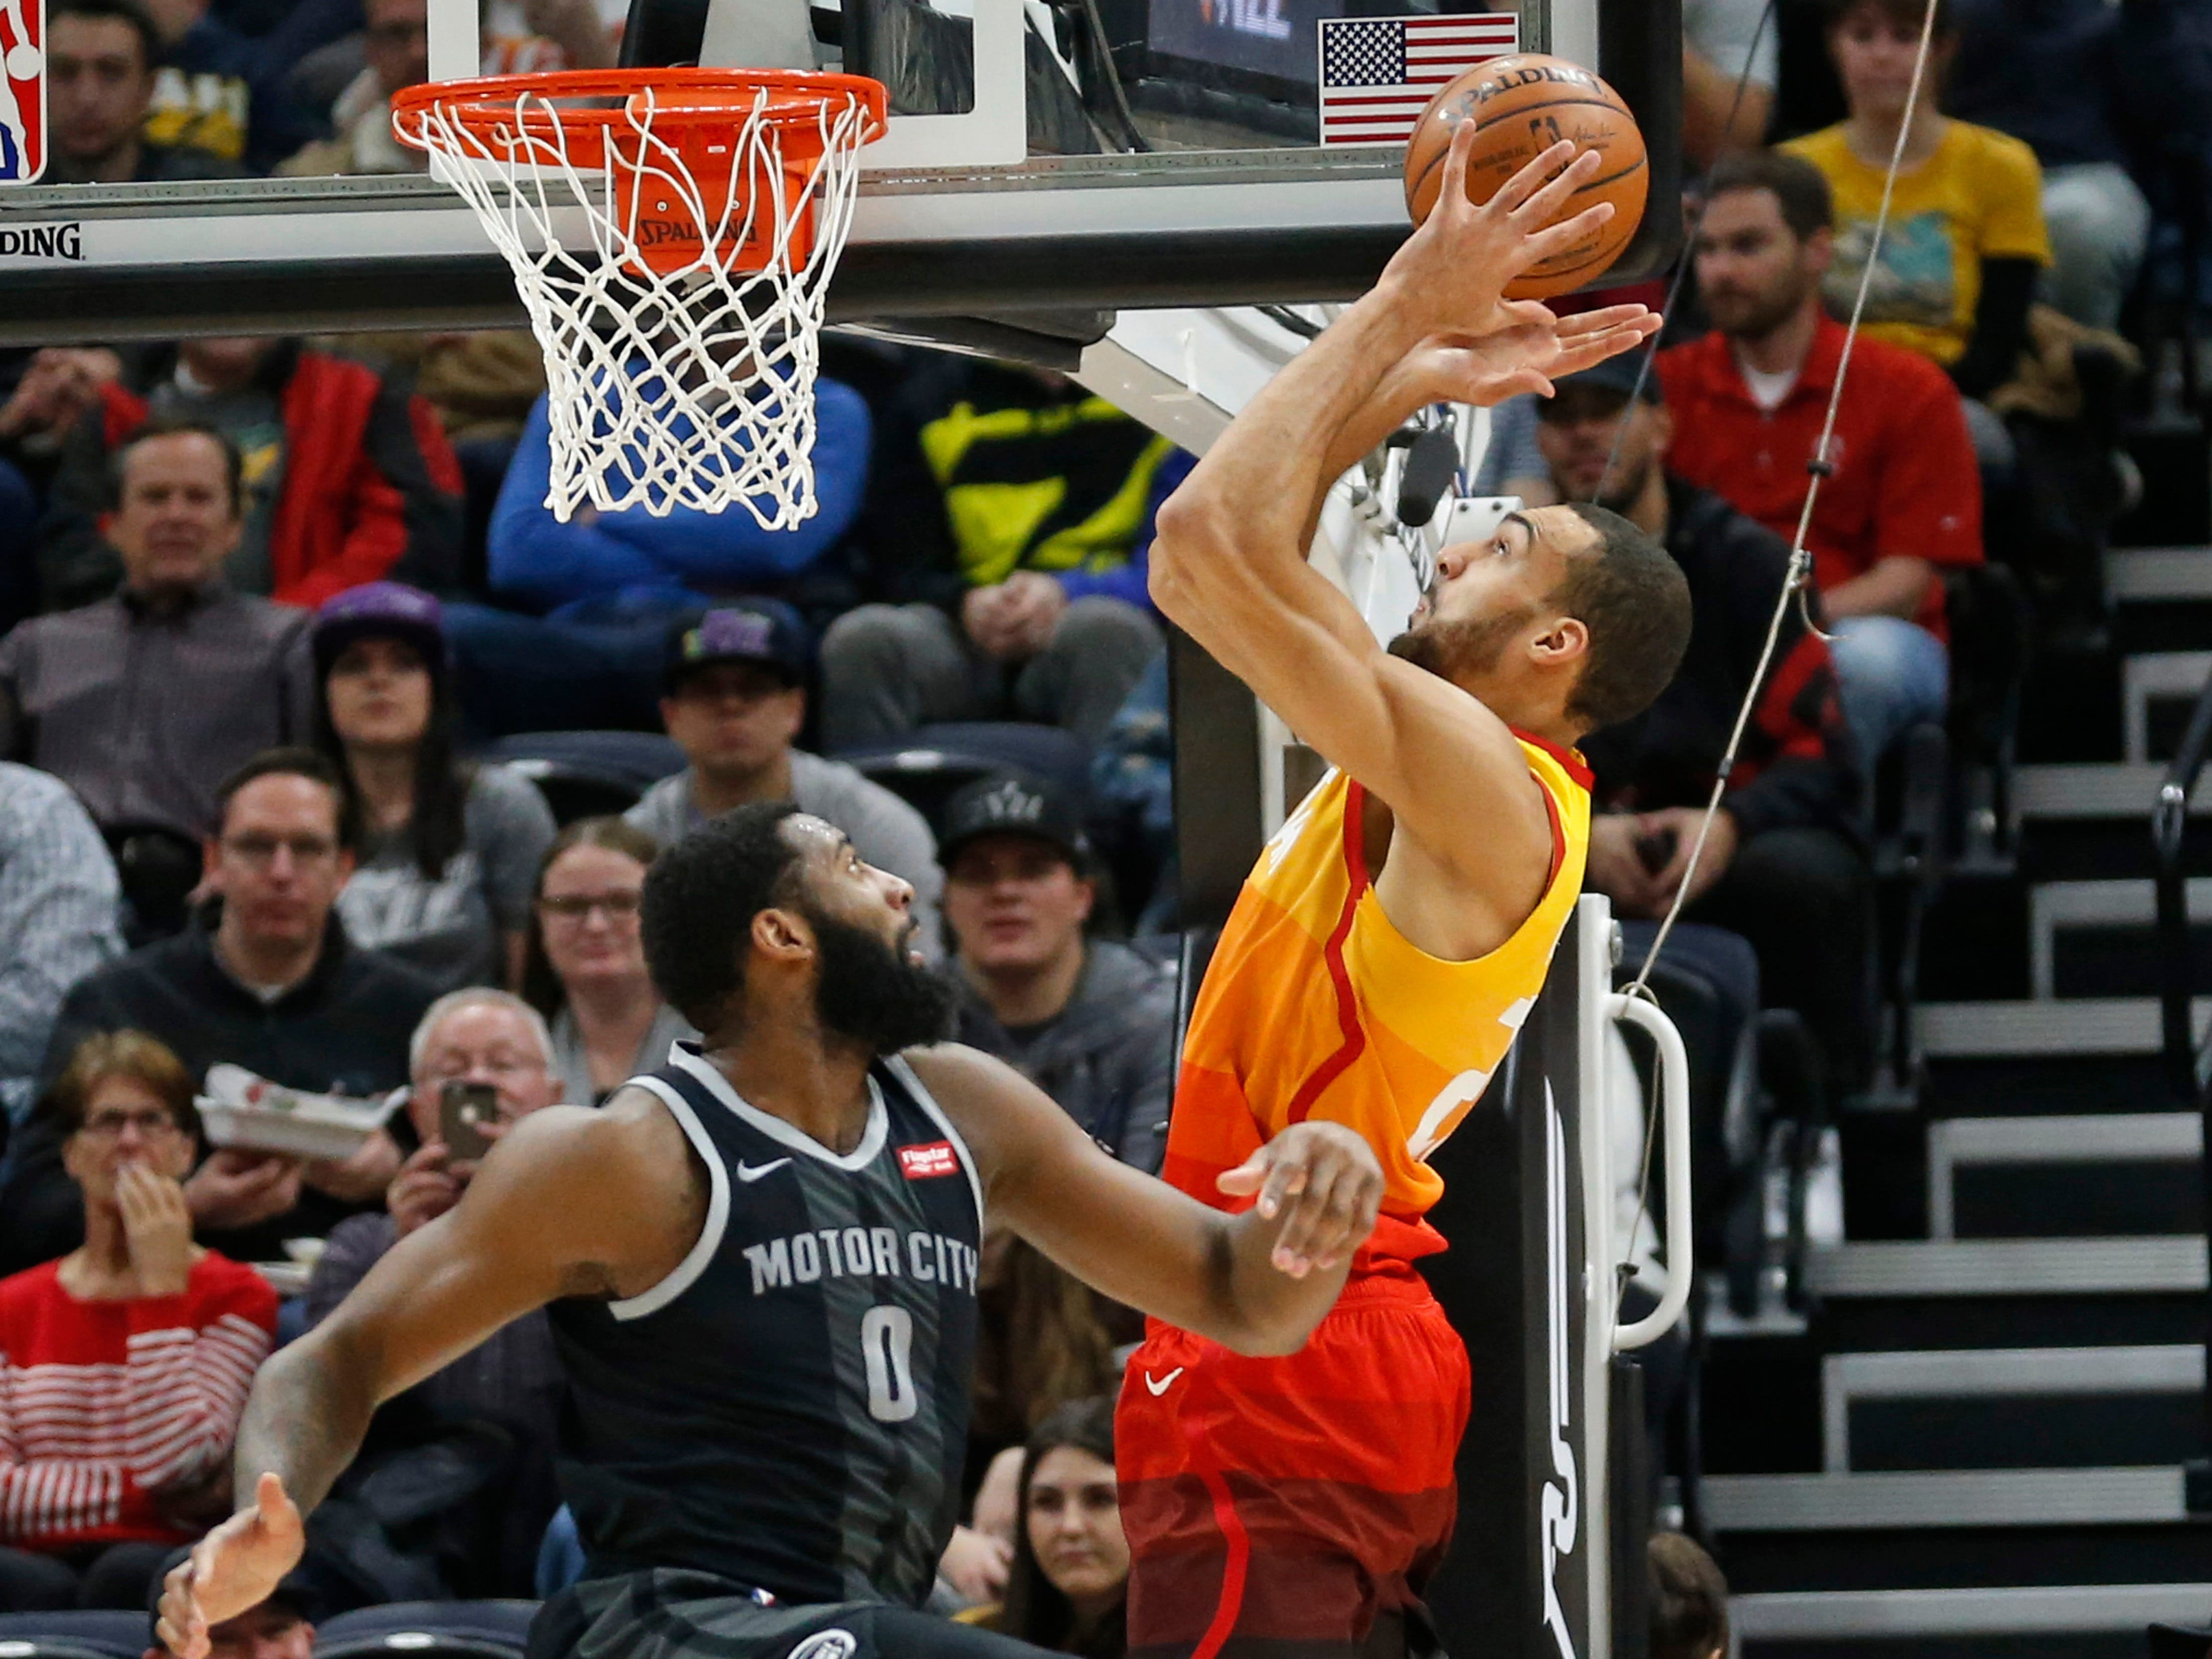 Utah Jazz center Rudy Gobert, right, reaches for a pass as Detroit Pistons forward Henry Ellenson (8) looks on during the first half.